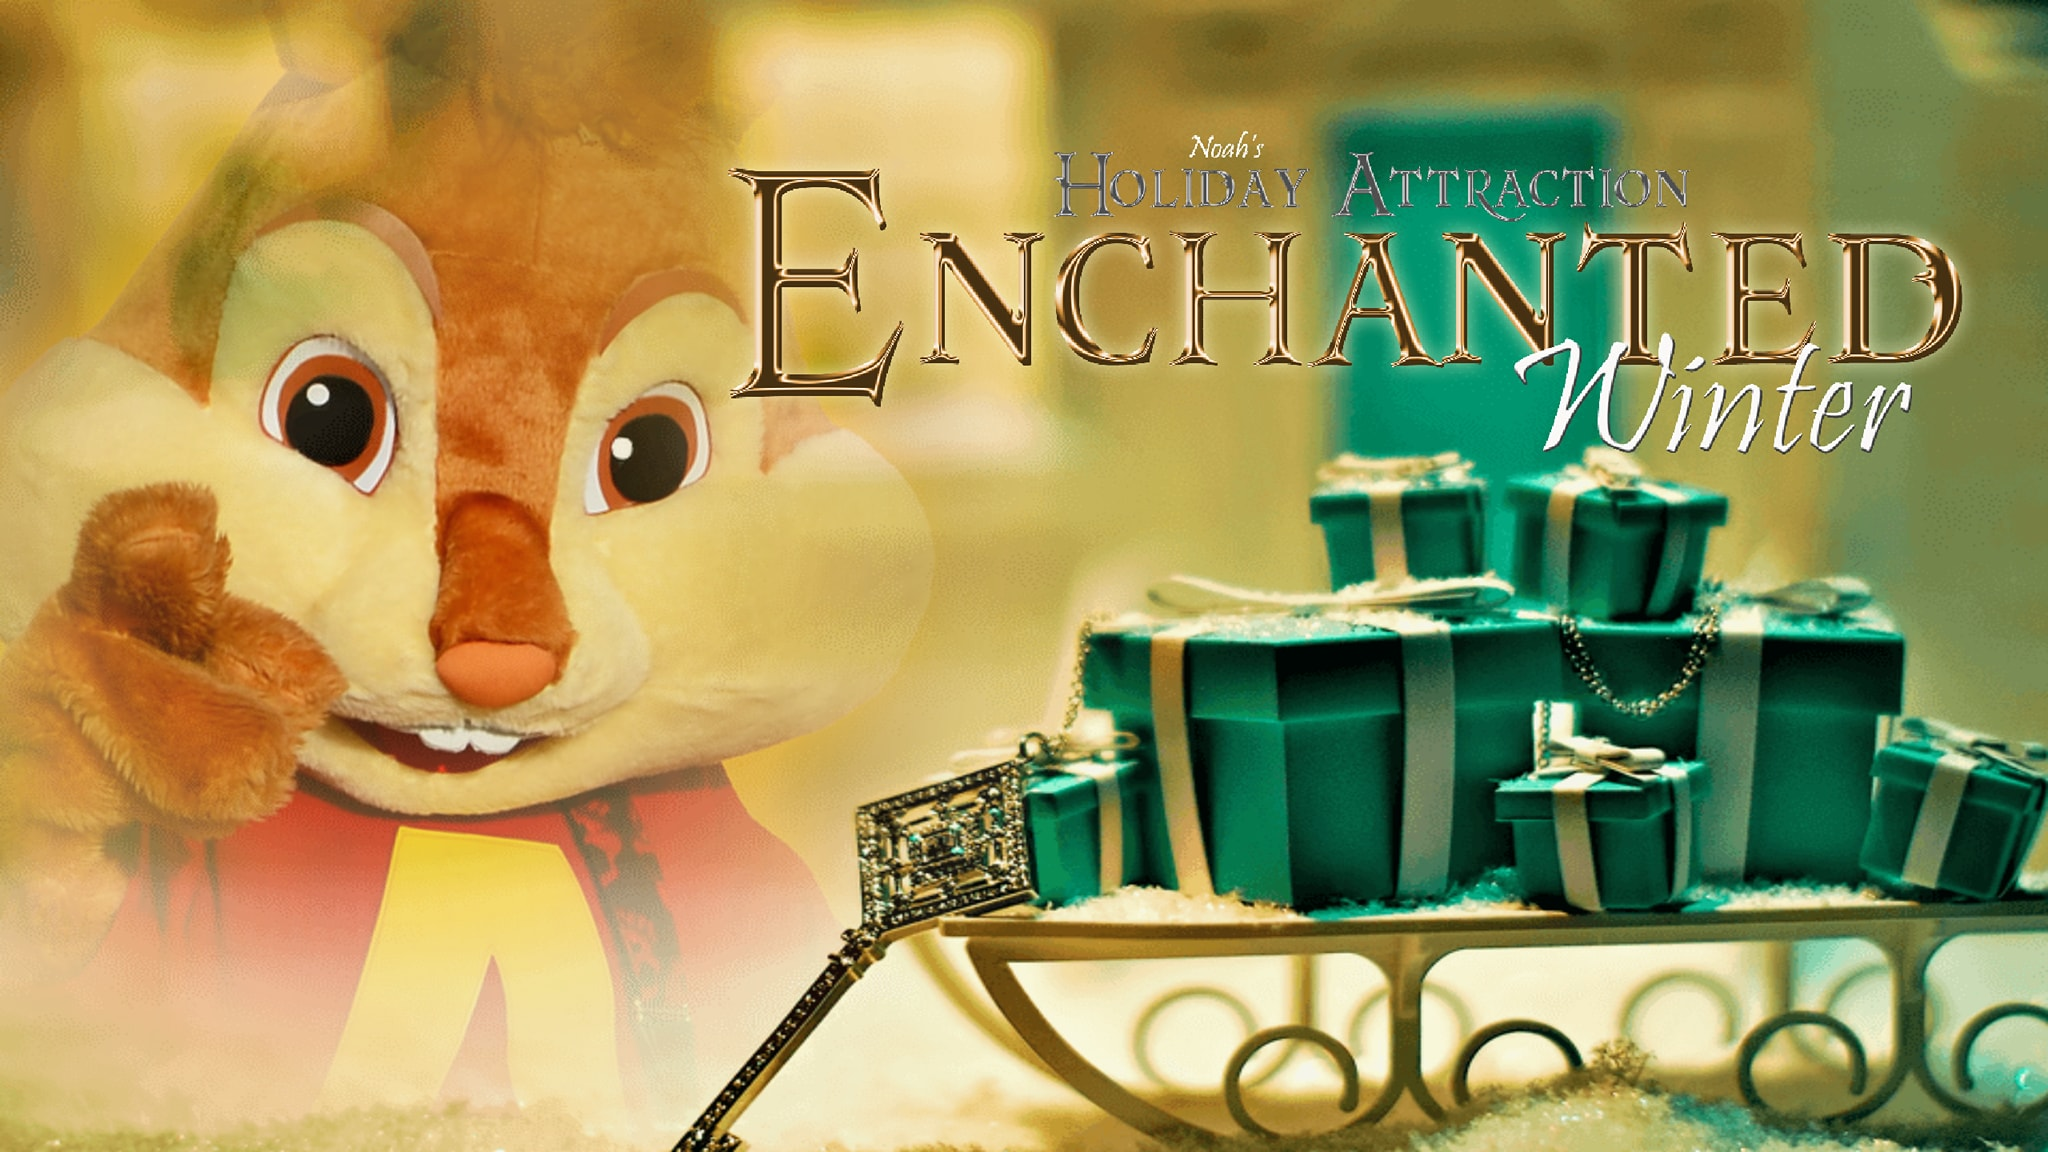 Chipmunk Enchanted Winter